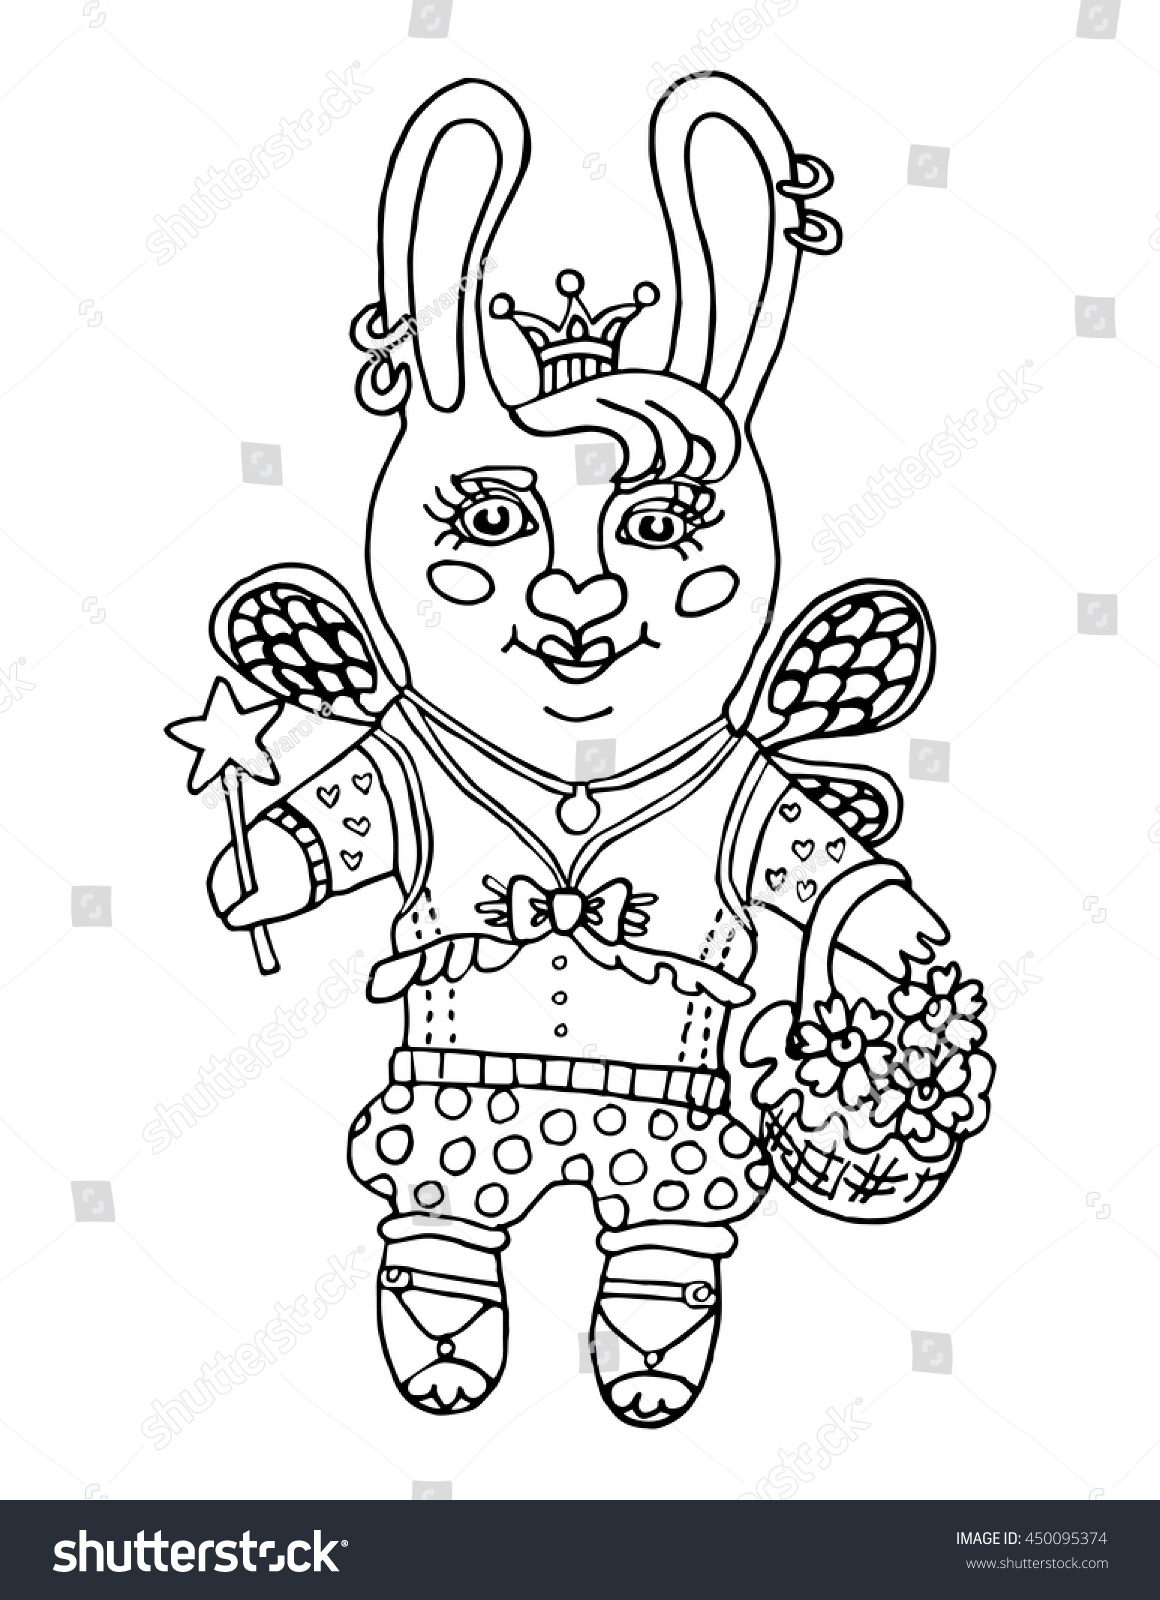 Coloring book princess crowns - Outline Drawing A Cute Rabbit Girl Fairy Wear Princess Crown And A Magic Wand Cartoon Character